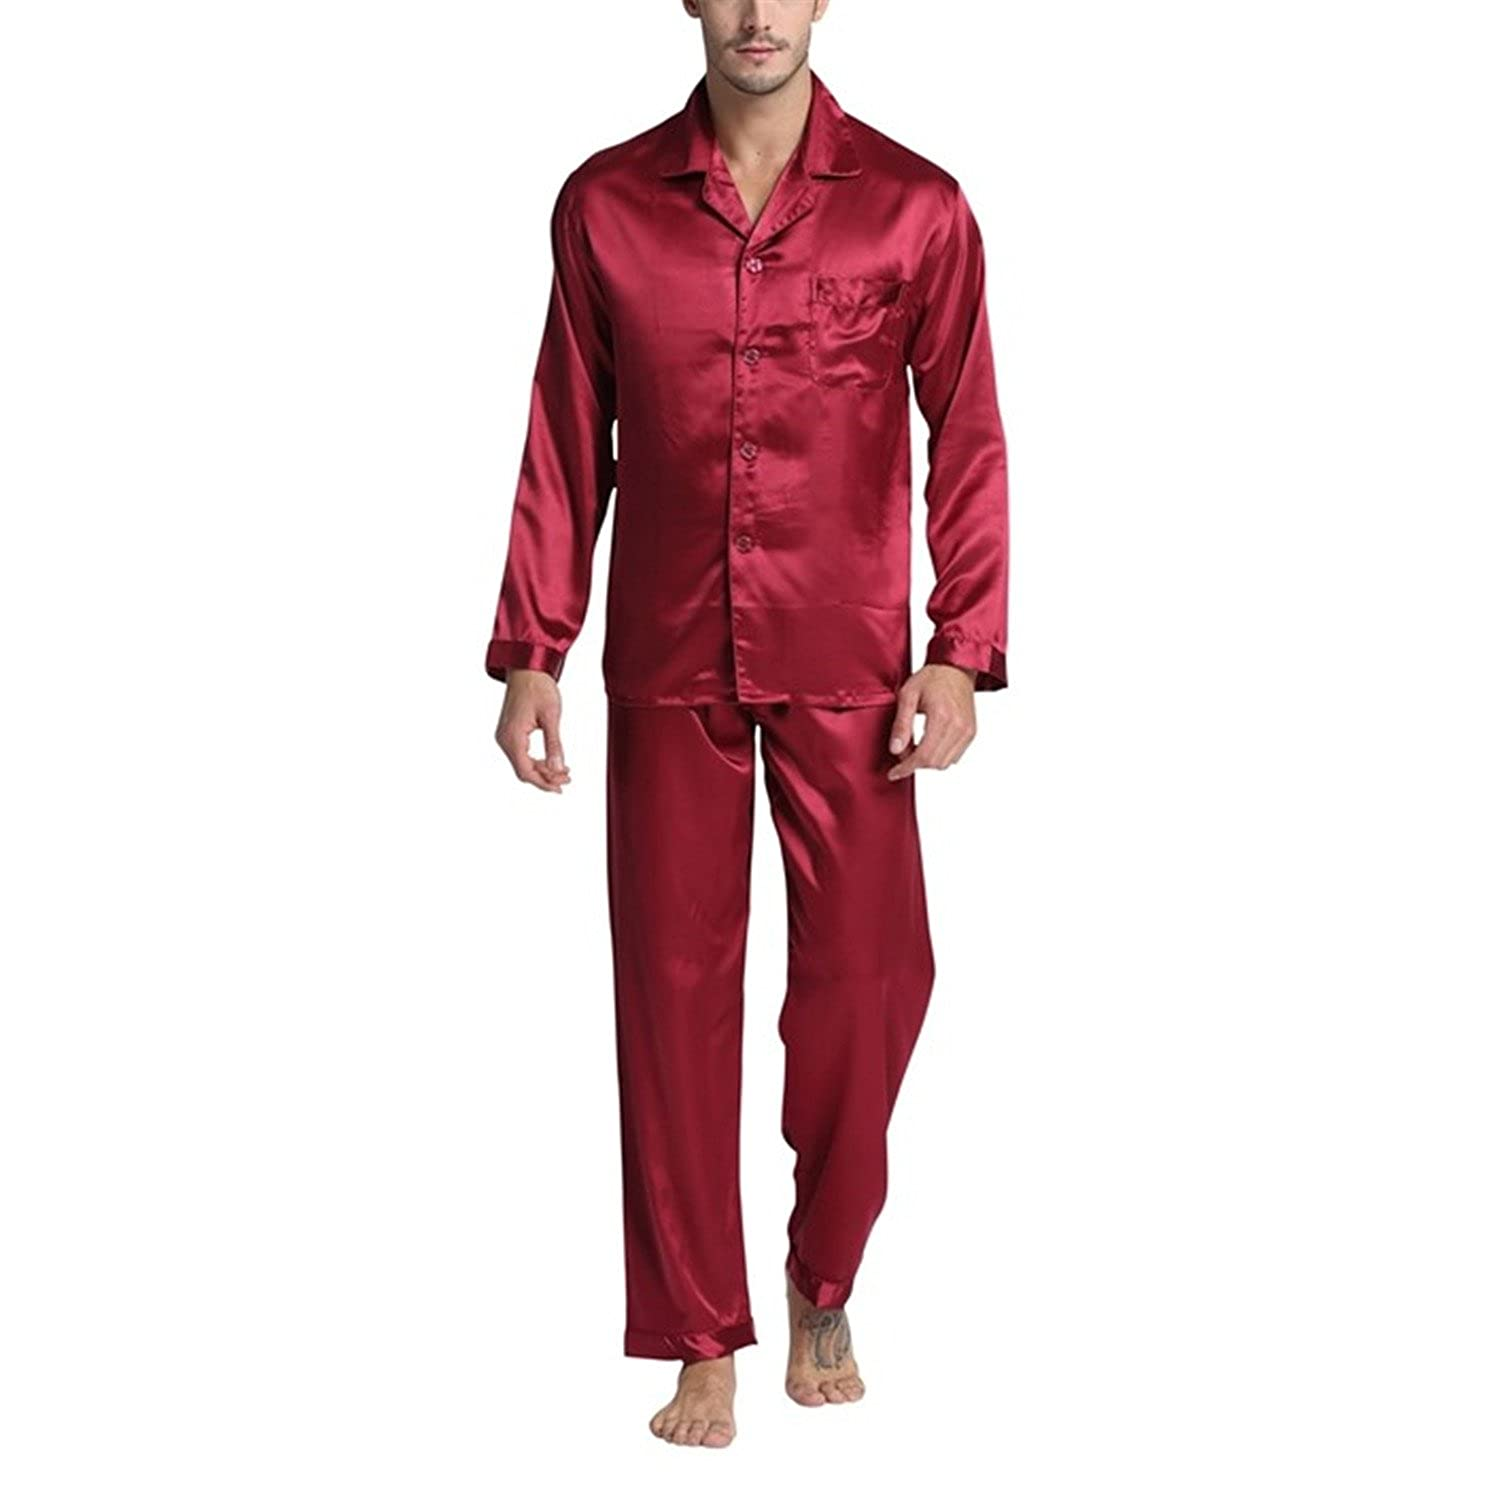 Michael Stevenson New Arrival MenS Stain Silk Pajamas Set Modern Style Silk Nightgown Men Satin Sleepwear Soft Cozy For Sleep As Picture Xxl at Amazon ...